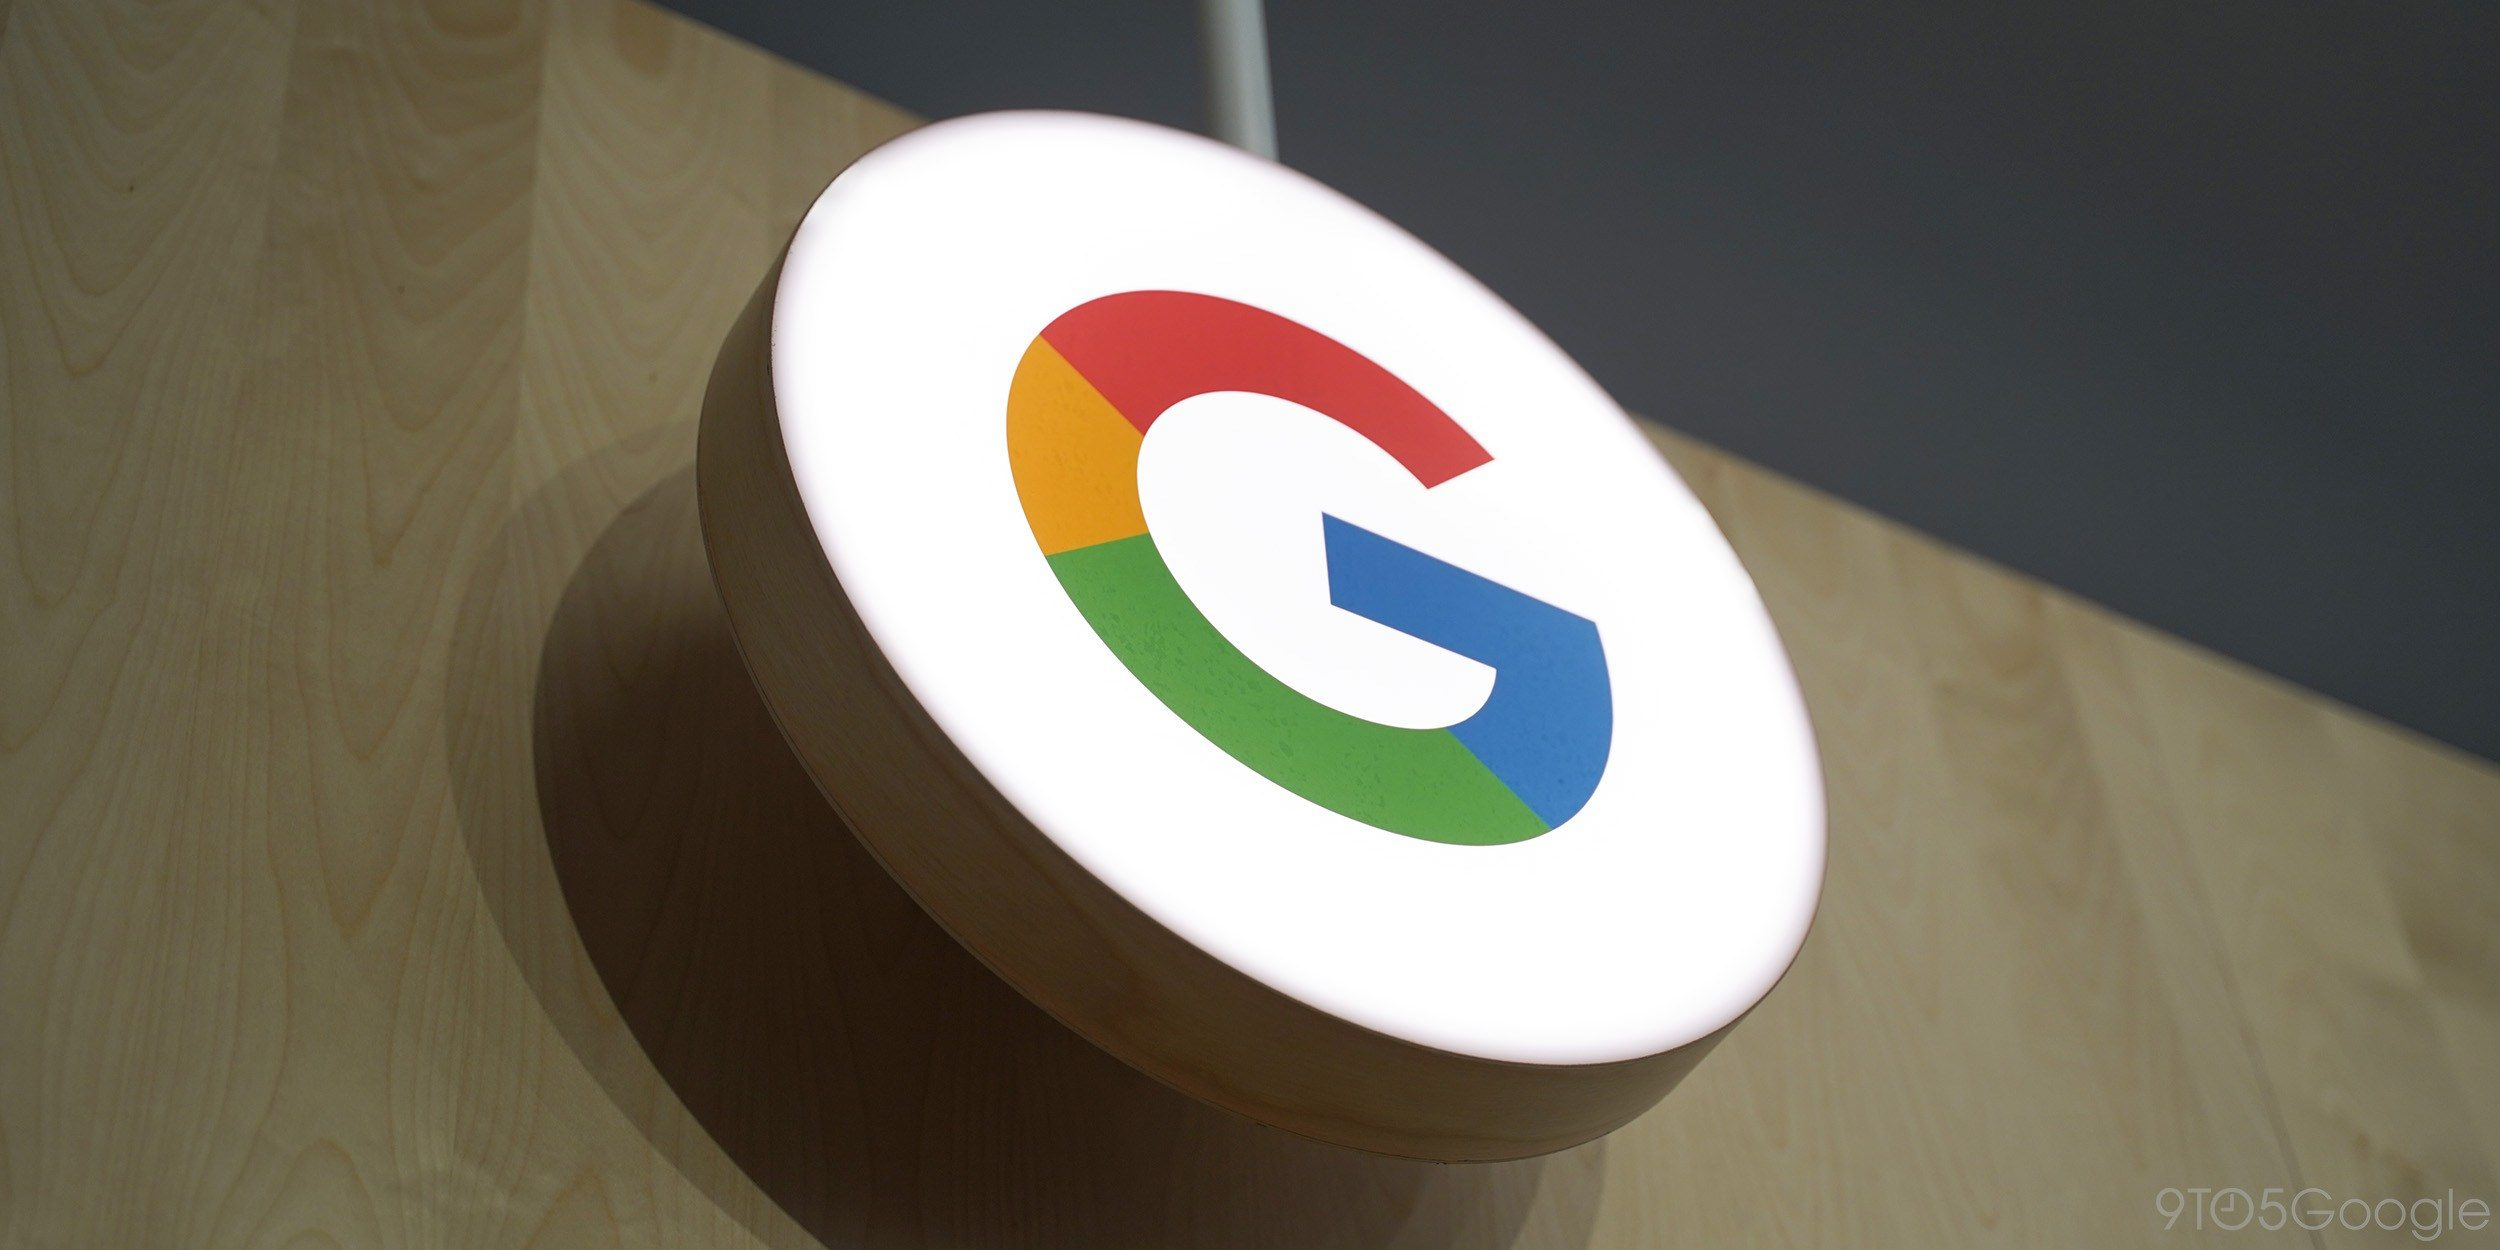 Google is killing AdSense for Android and iOS this year